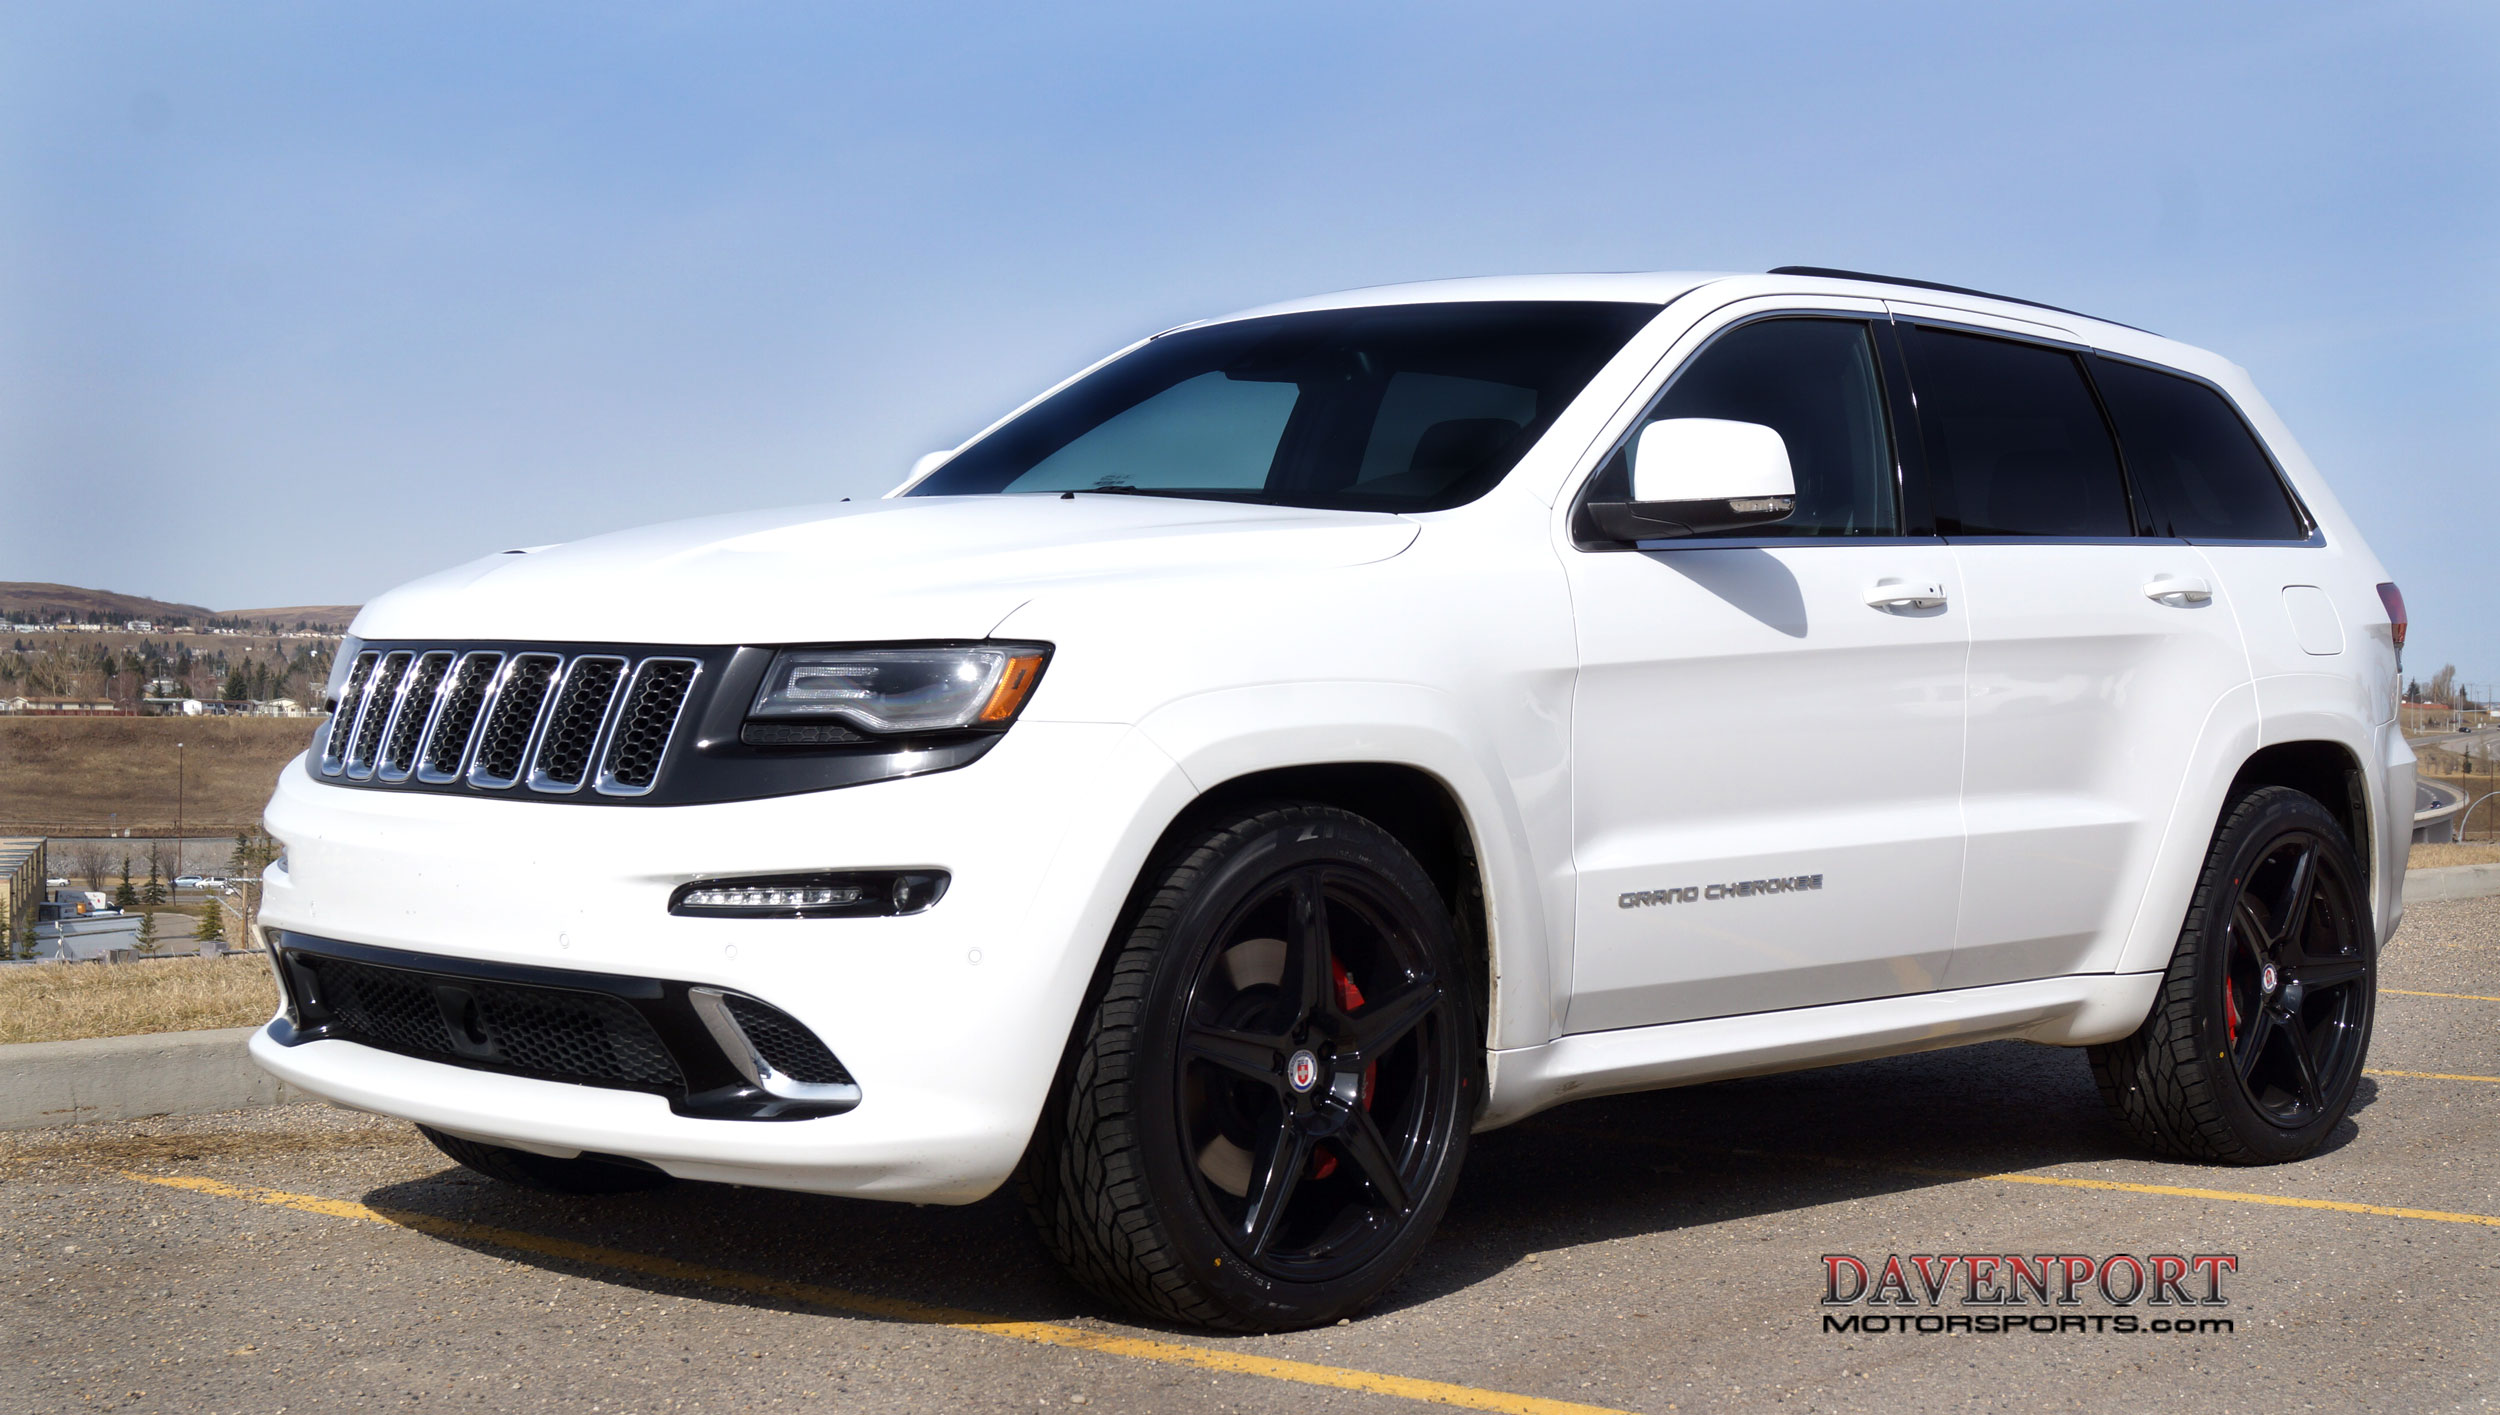 jeep grand cherokee srt8 archives davenport motorsports. Black Bedroom Furniture Sets. Home Design Ideas